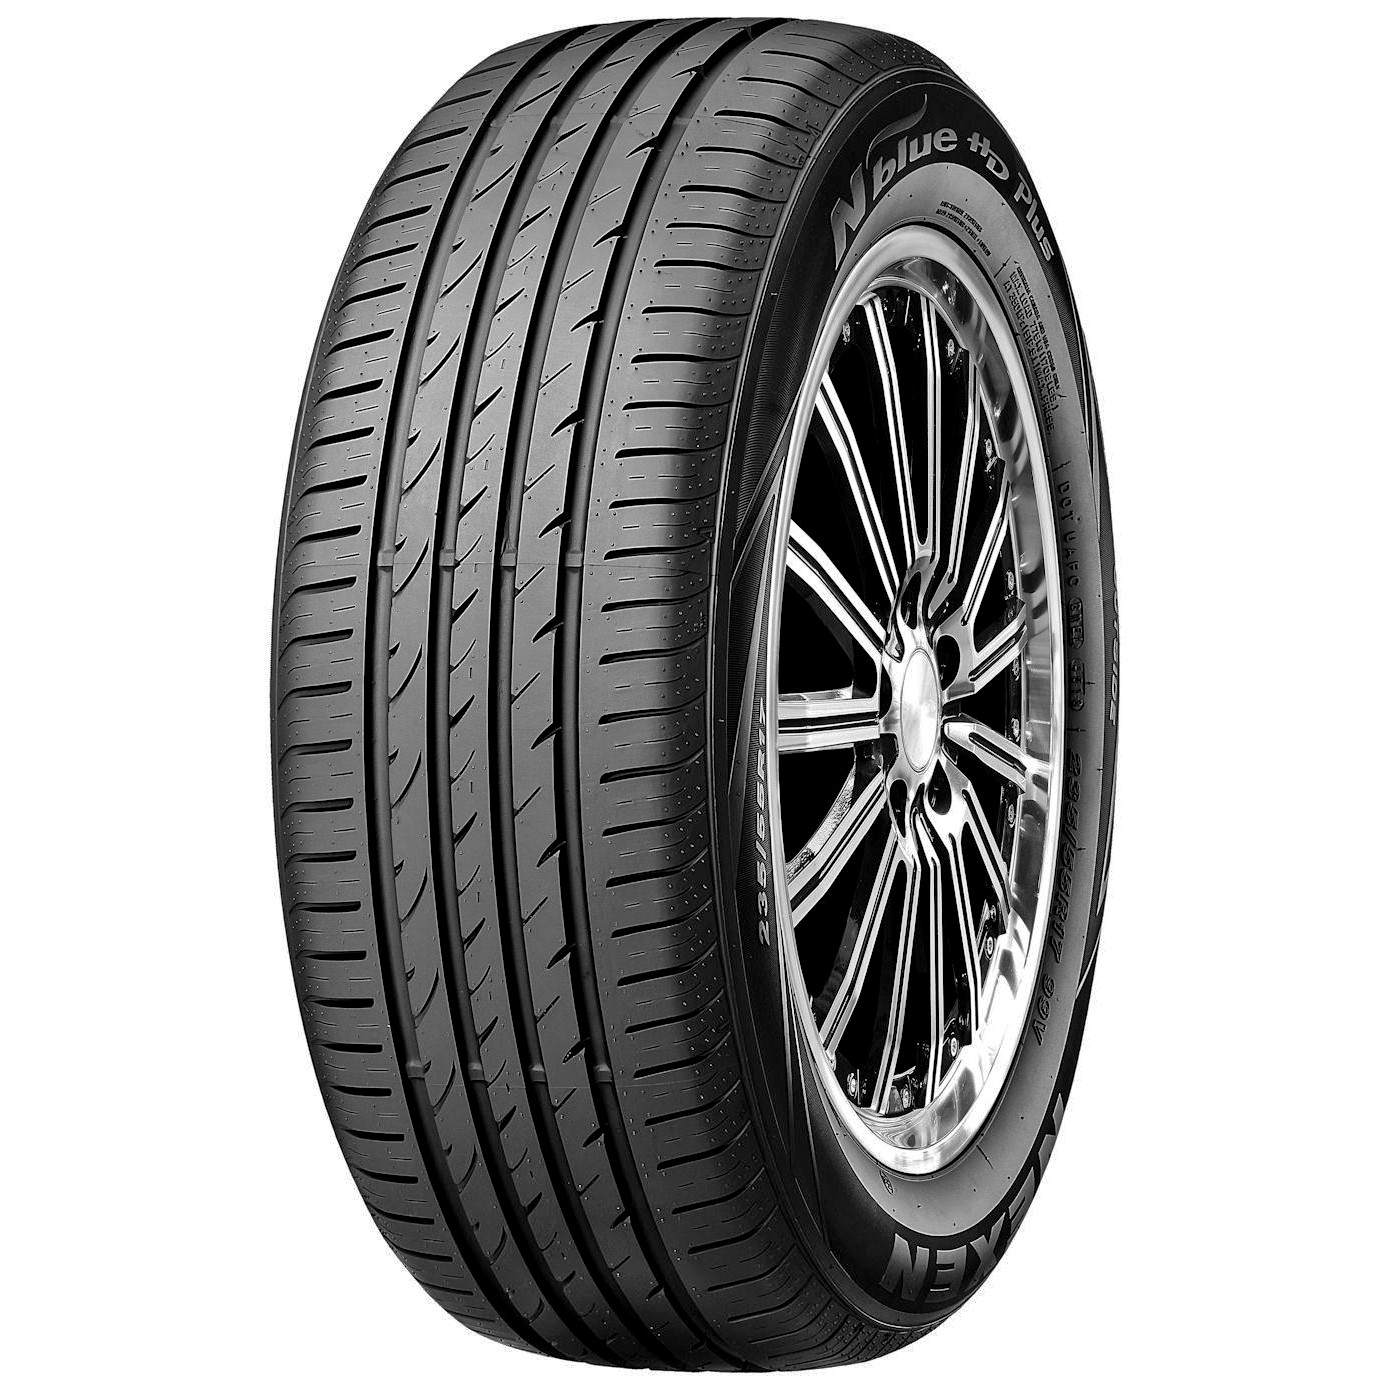 Шина 225/60R16 97H NBLUE ECO (Nexen) фото, цена